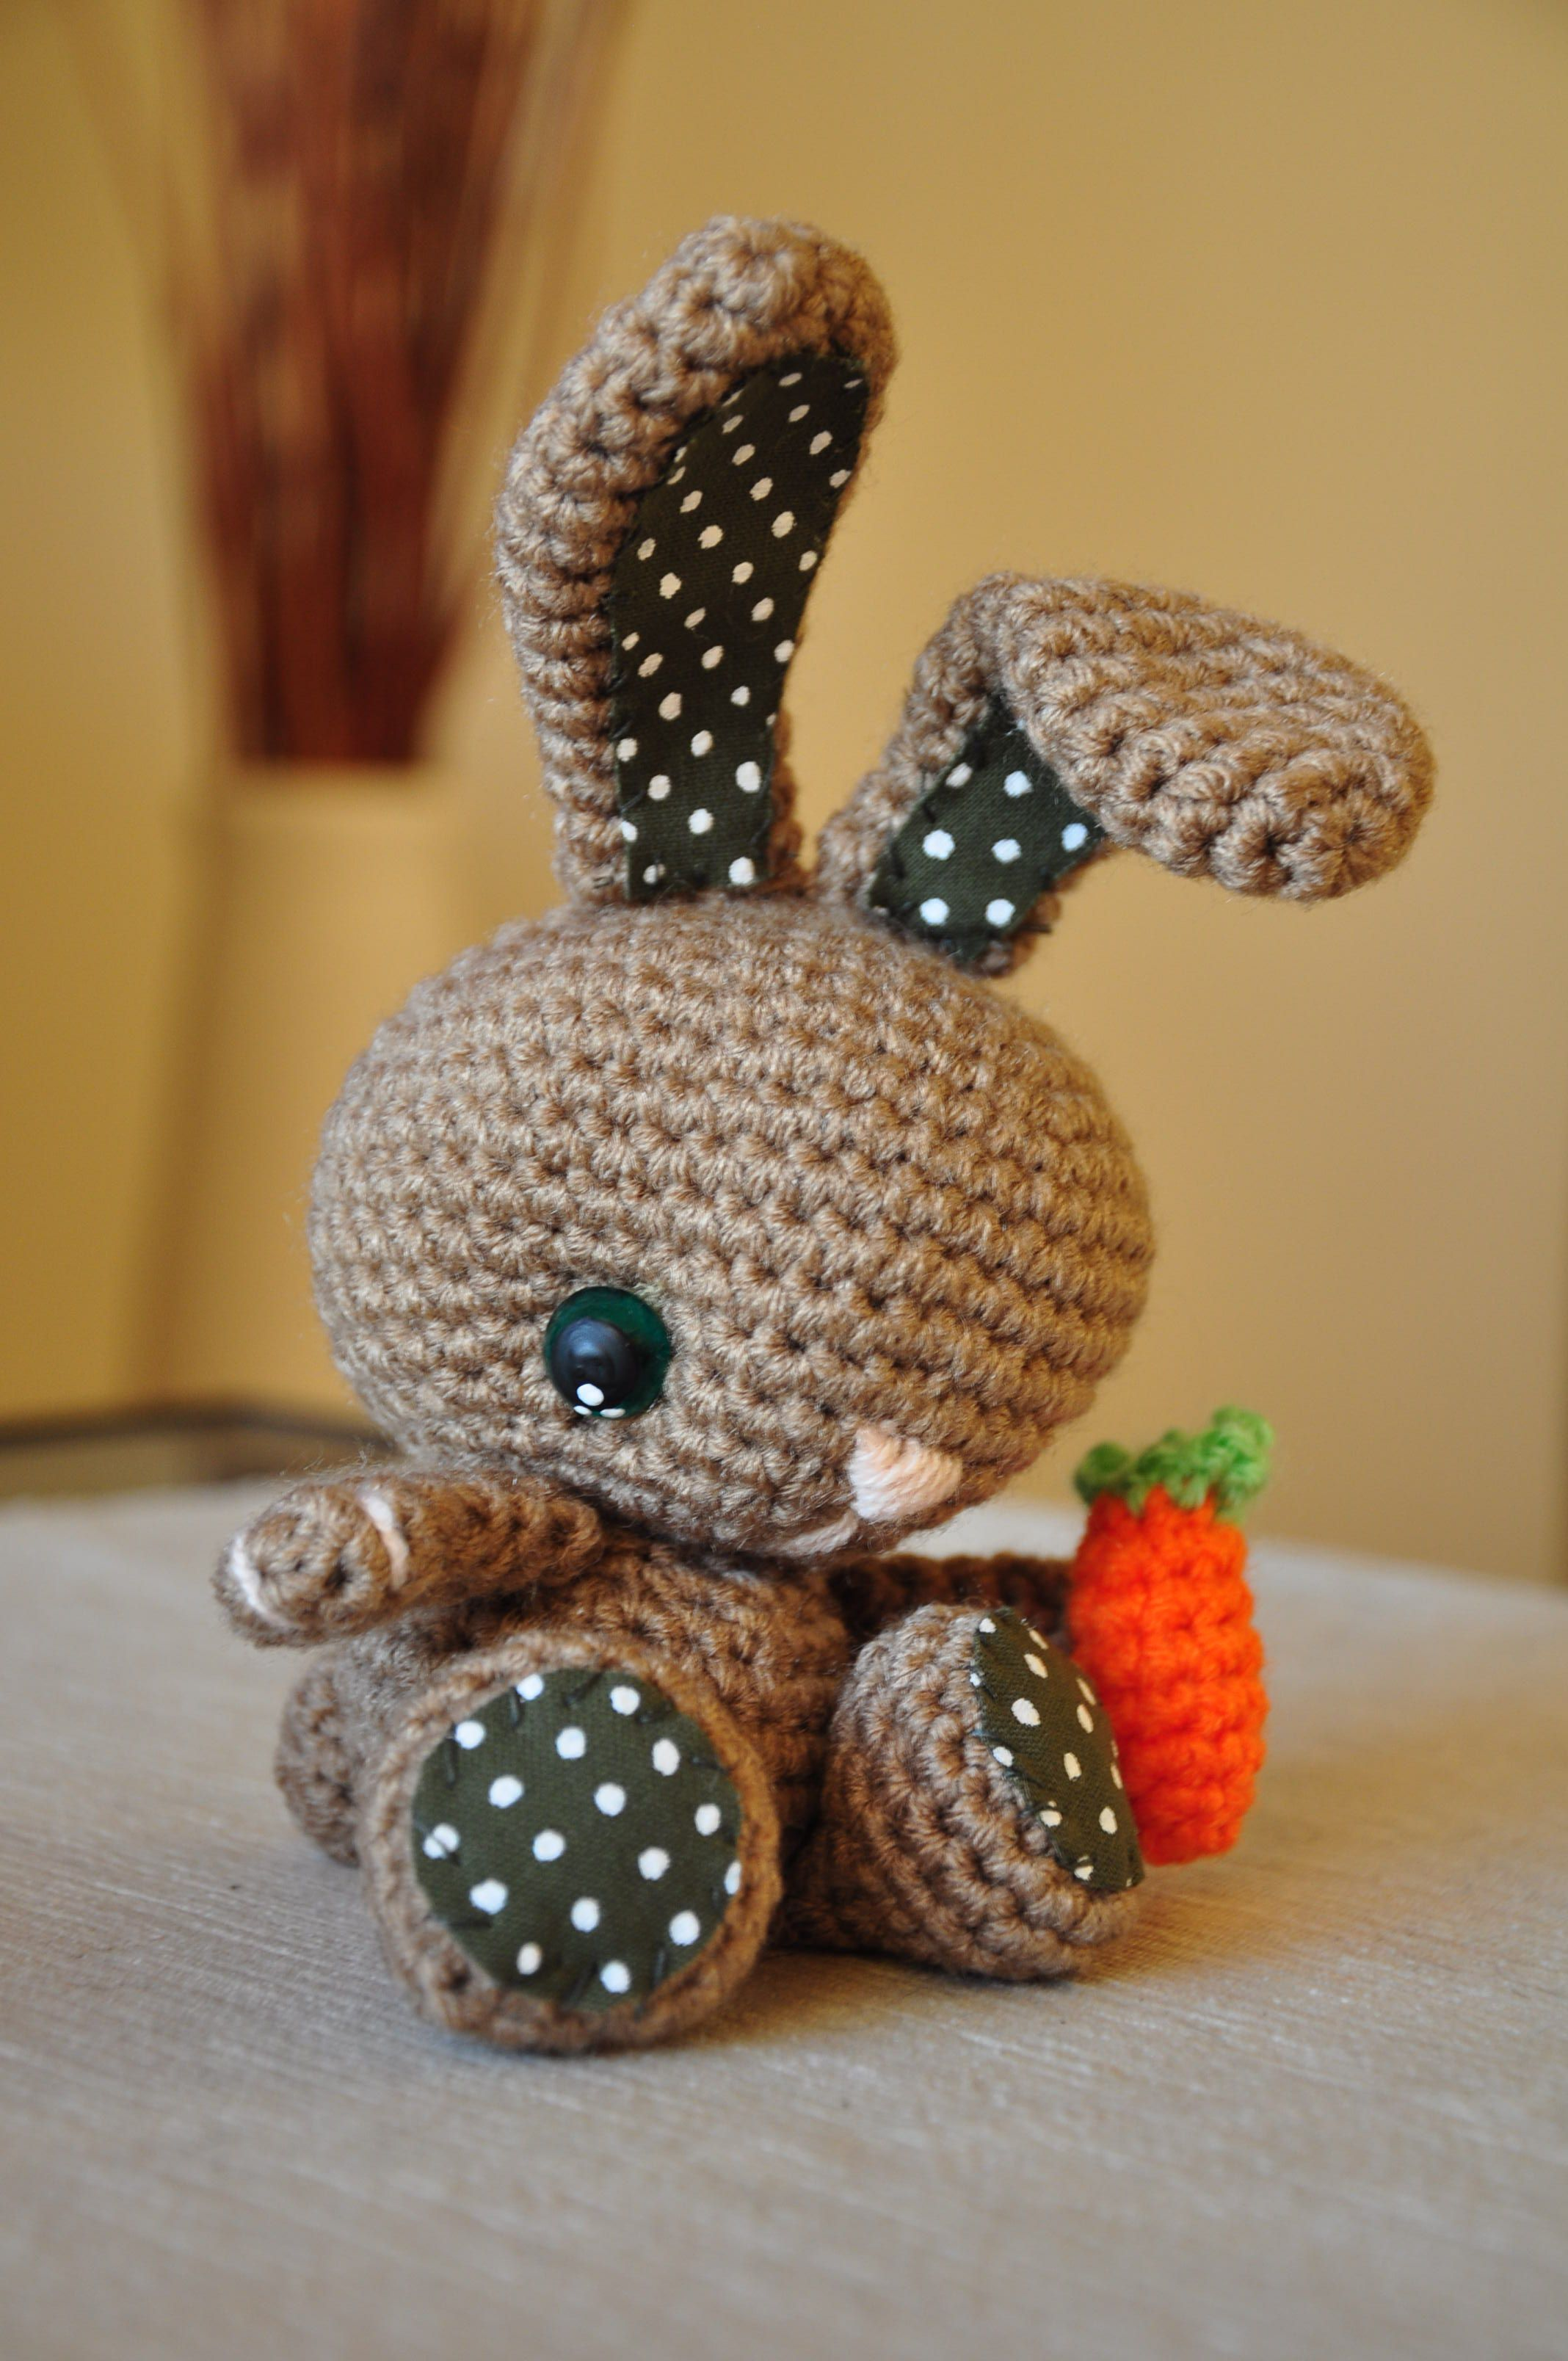 Chica outlet conejito free pattern spanish use google chica outlet conejito free pattern spanish use google translate crochet bunny patterneaster bankloansurffo Choice Image